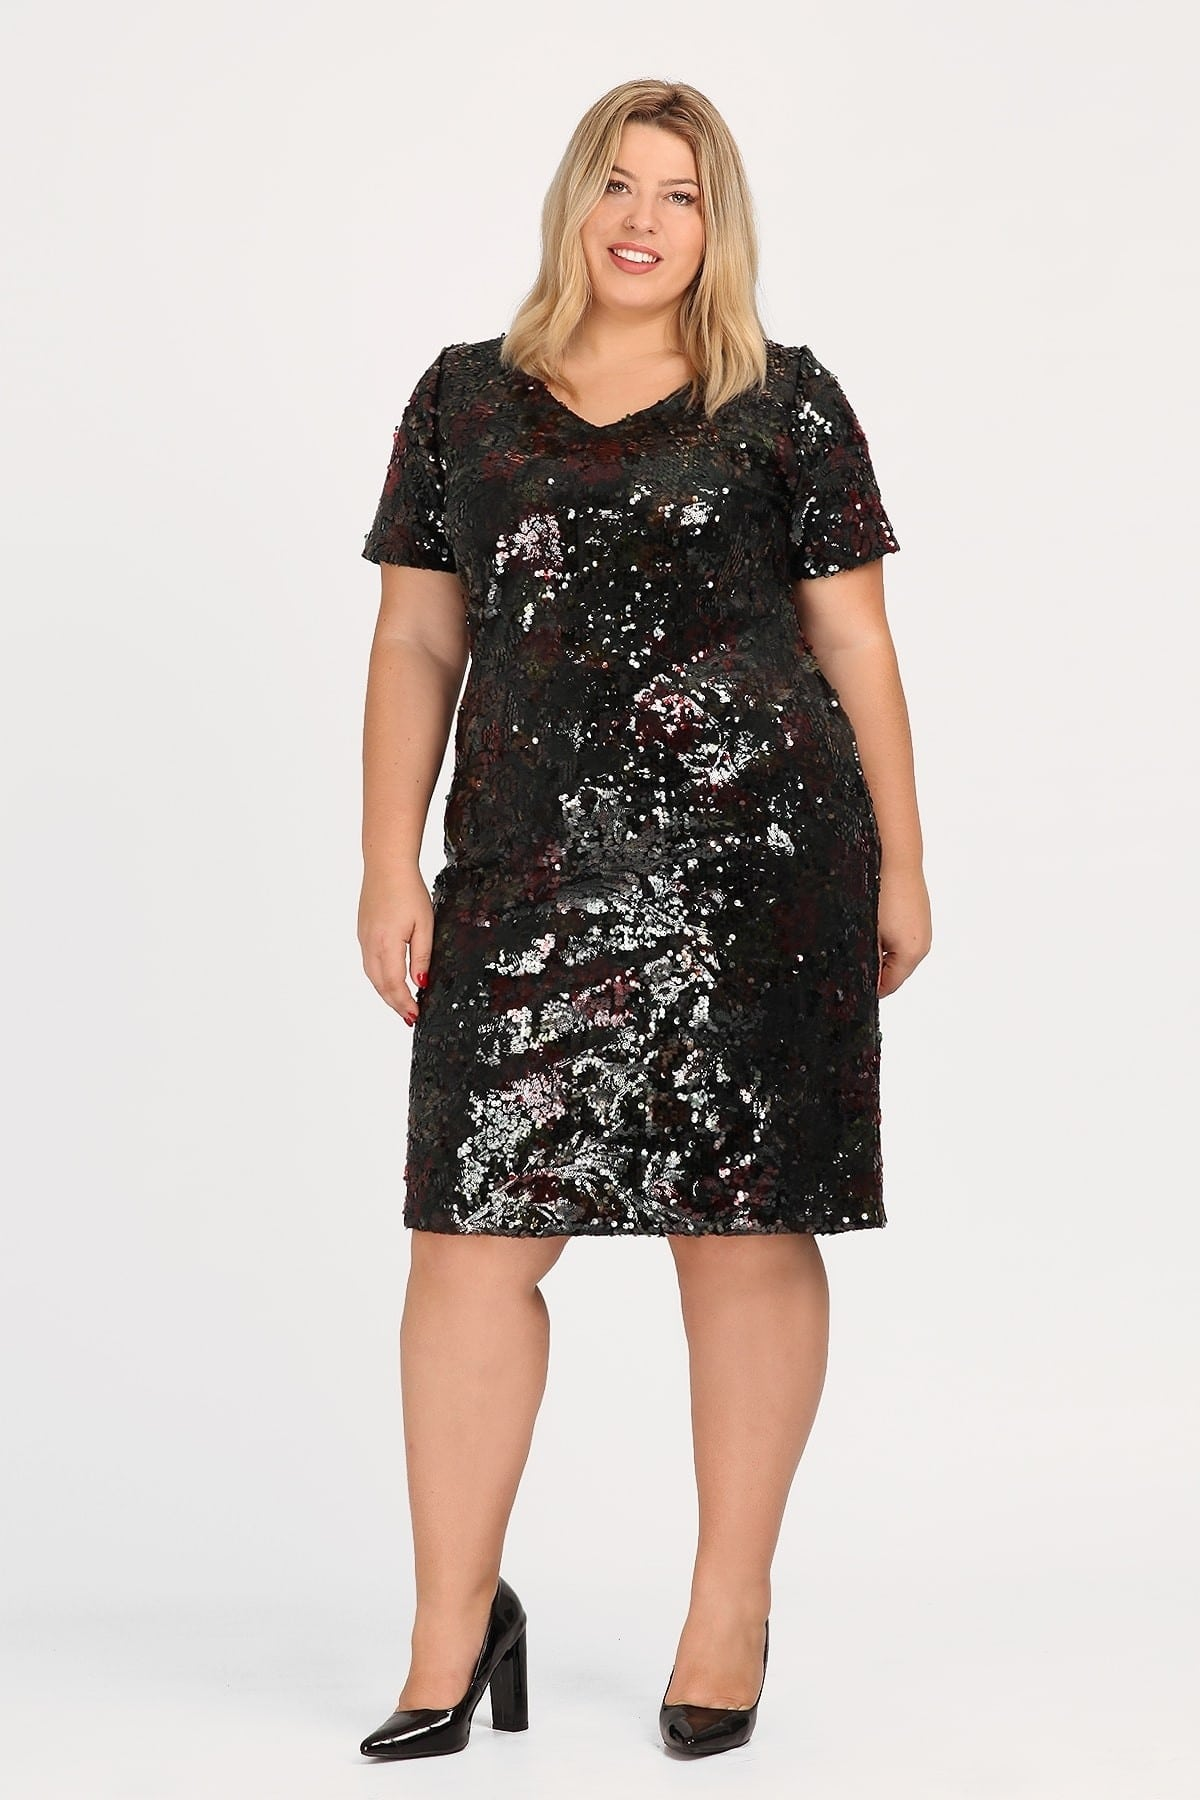 Floral dress from elastic sequins